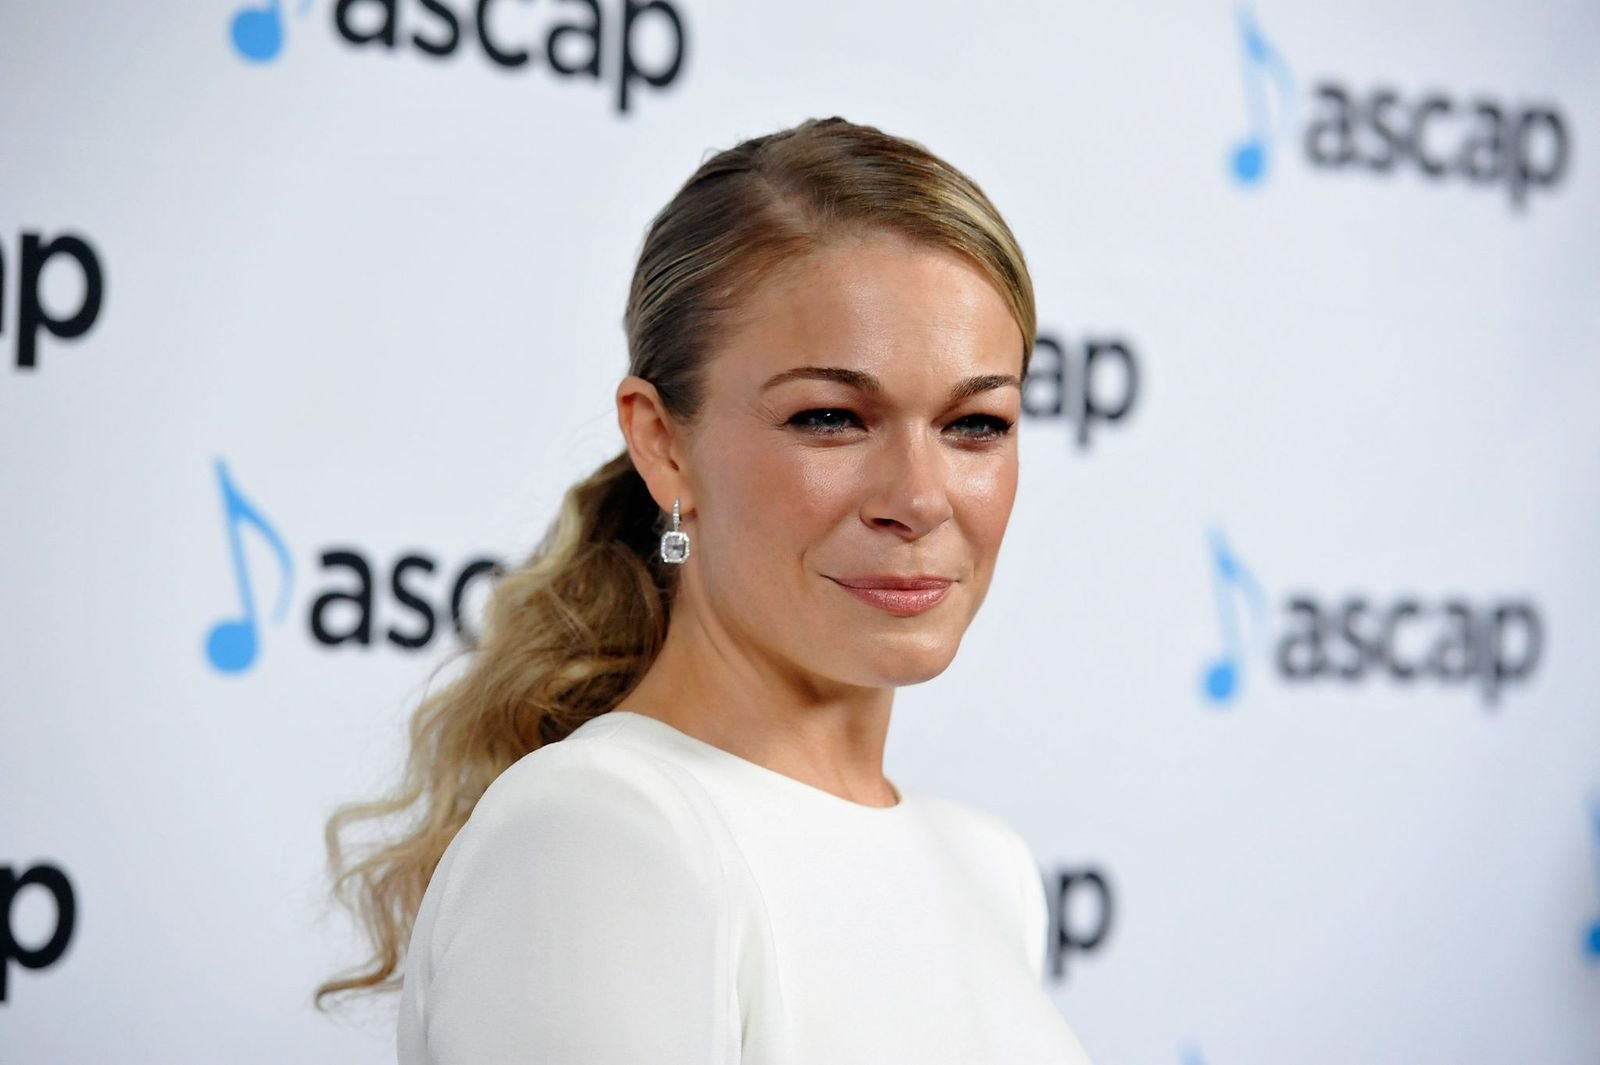 Watch LeAnn Rimes Sing the Song 'Fancy' Live for the First Time in 30 Years in a Gorgeous Red Dress